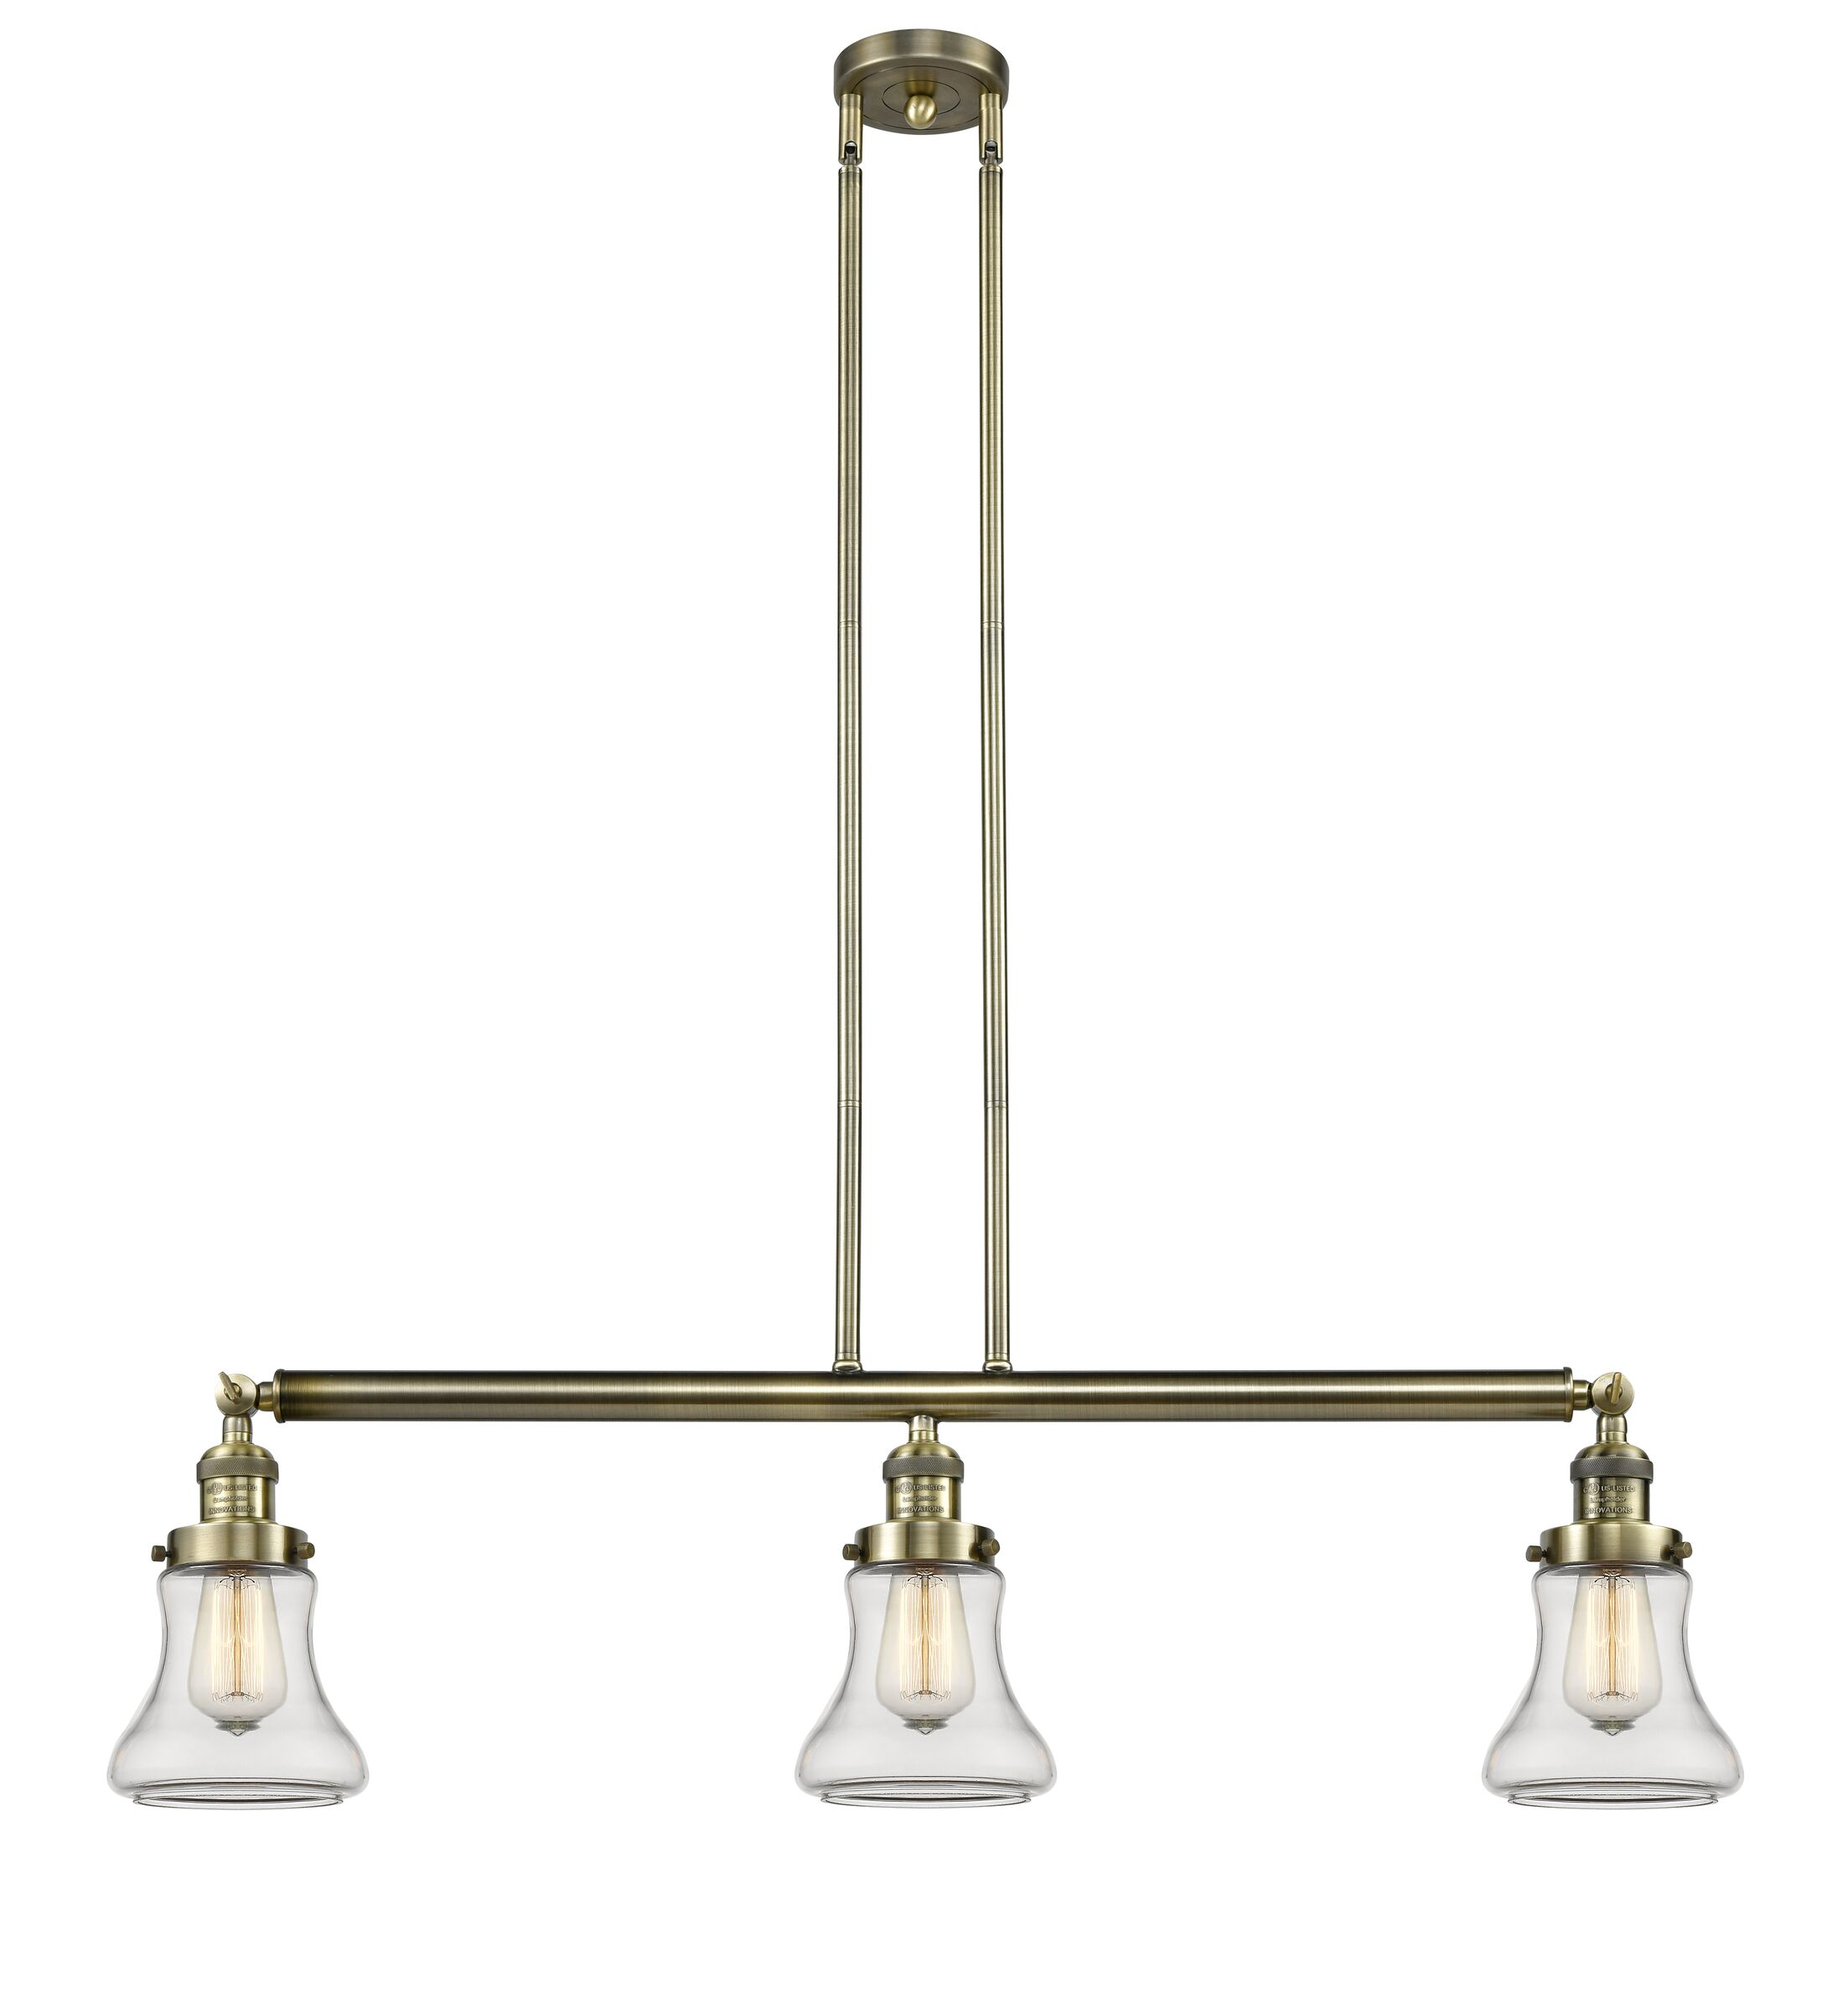 Nardone 3-Light Kitchen Island Pendant Bulb Type: Incandescent, Shade Color: Seedy, Finish: Black Brushed Brass